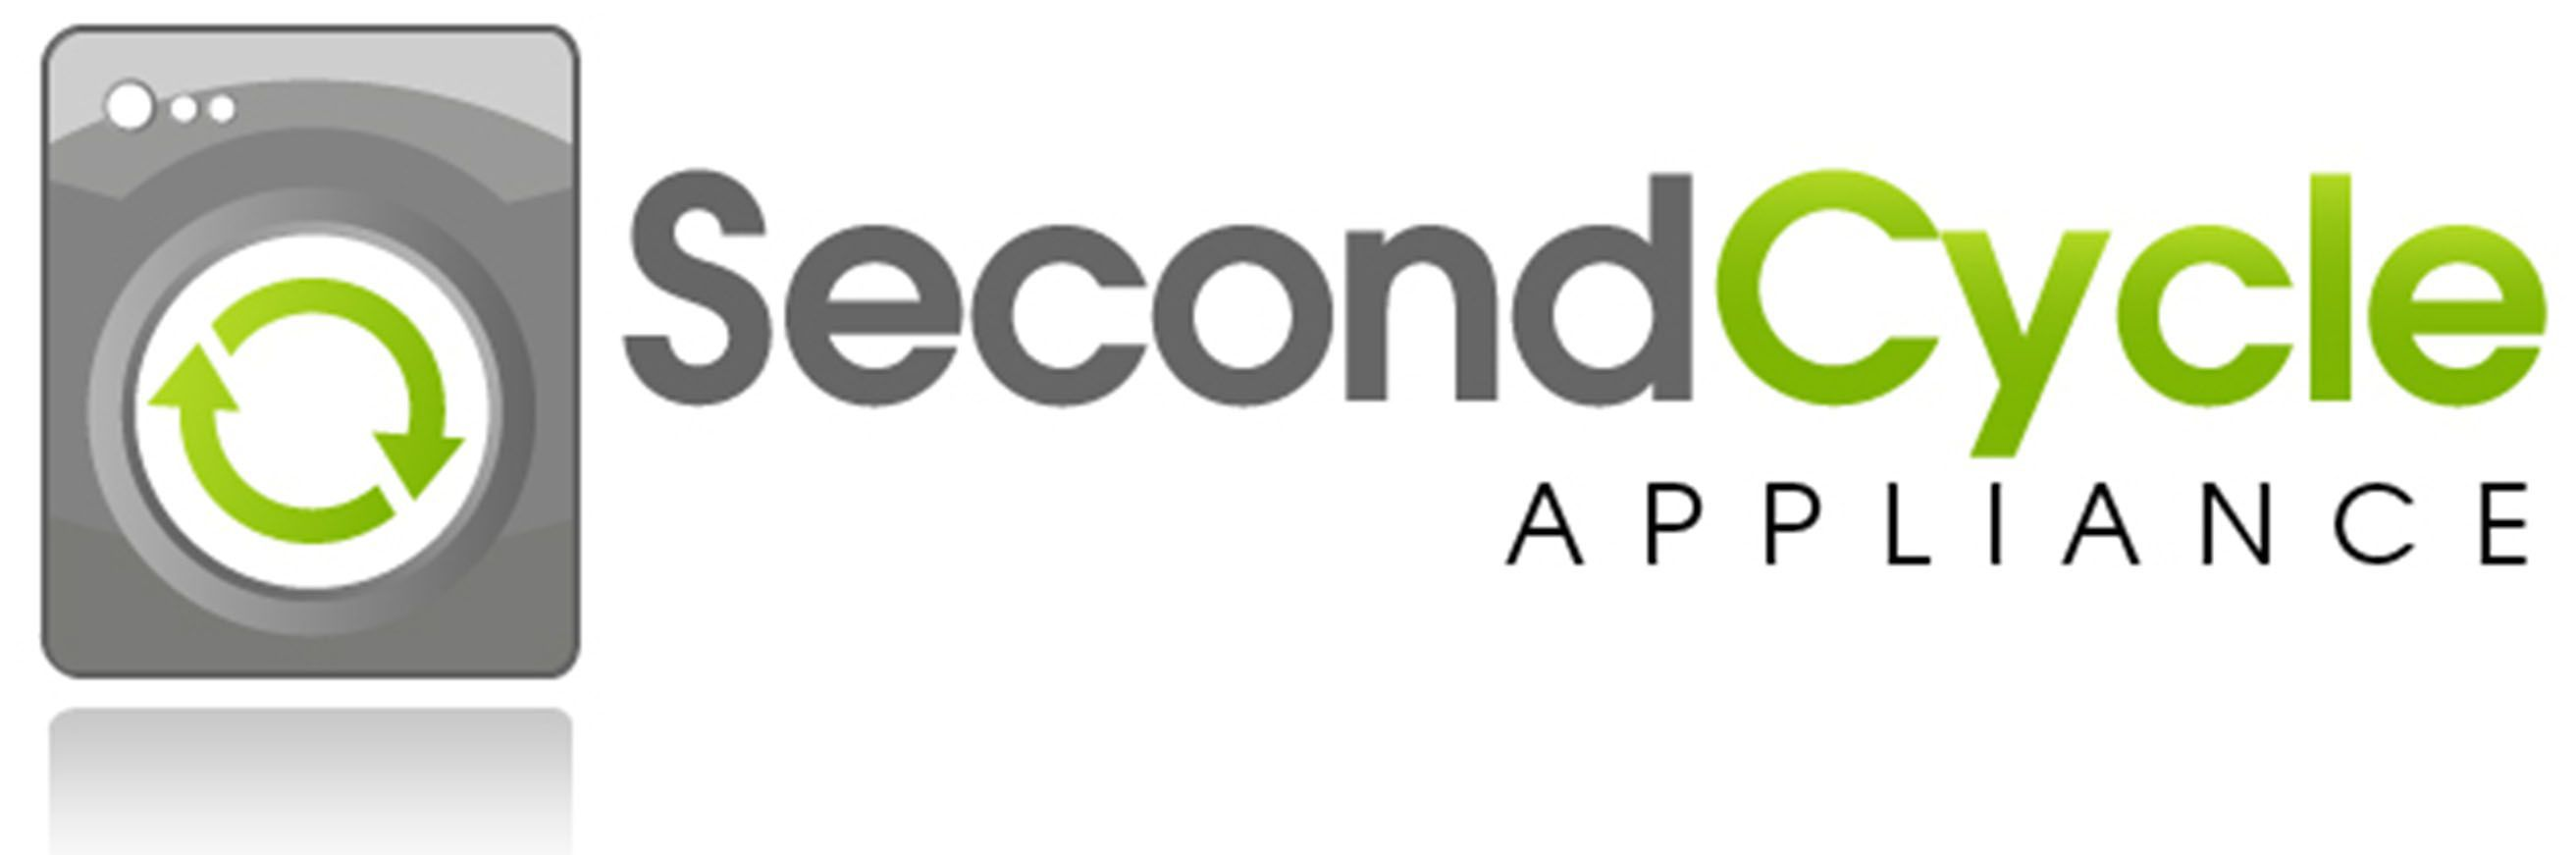 High Quality Appliances - Second Cycle Appliance Inc